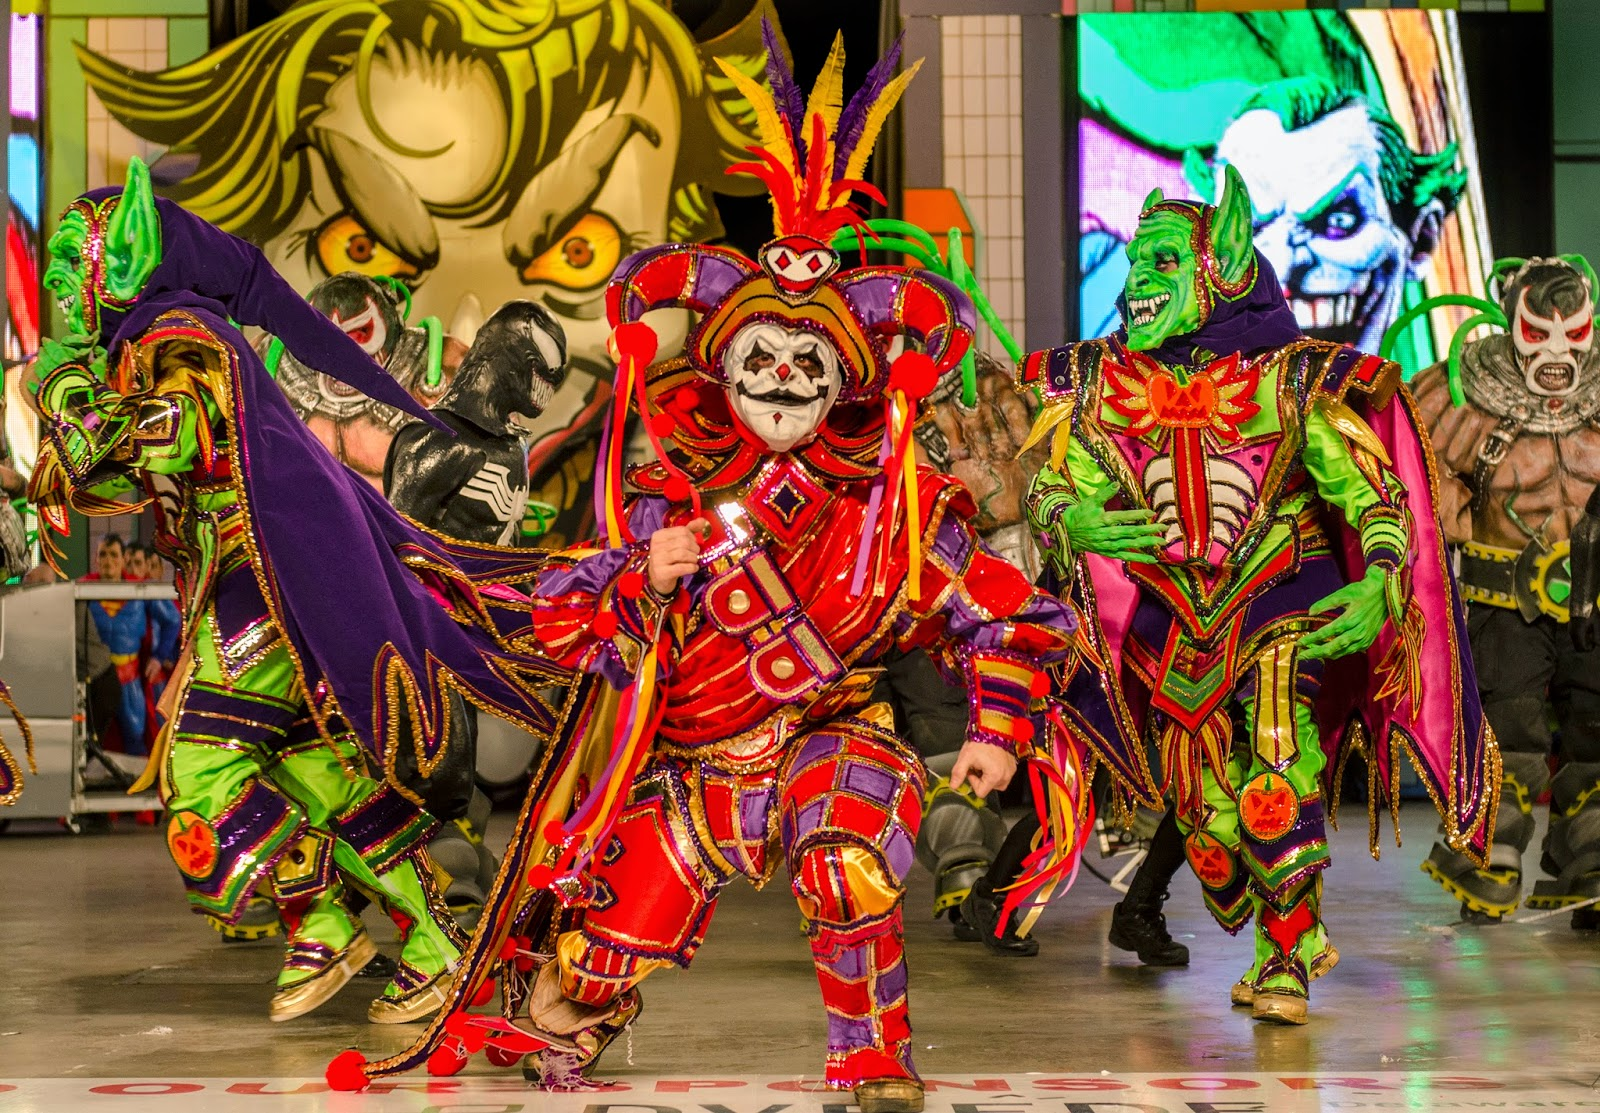 Annual Mummers Parade in Philadelphia